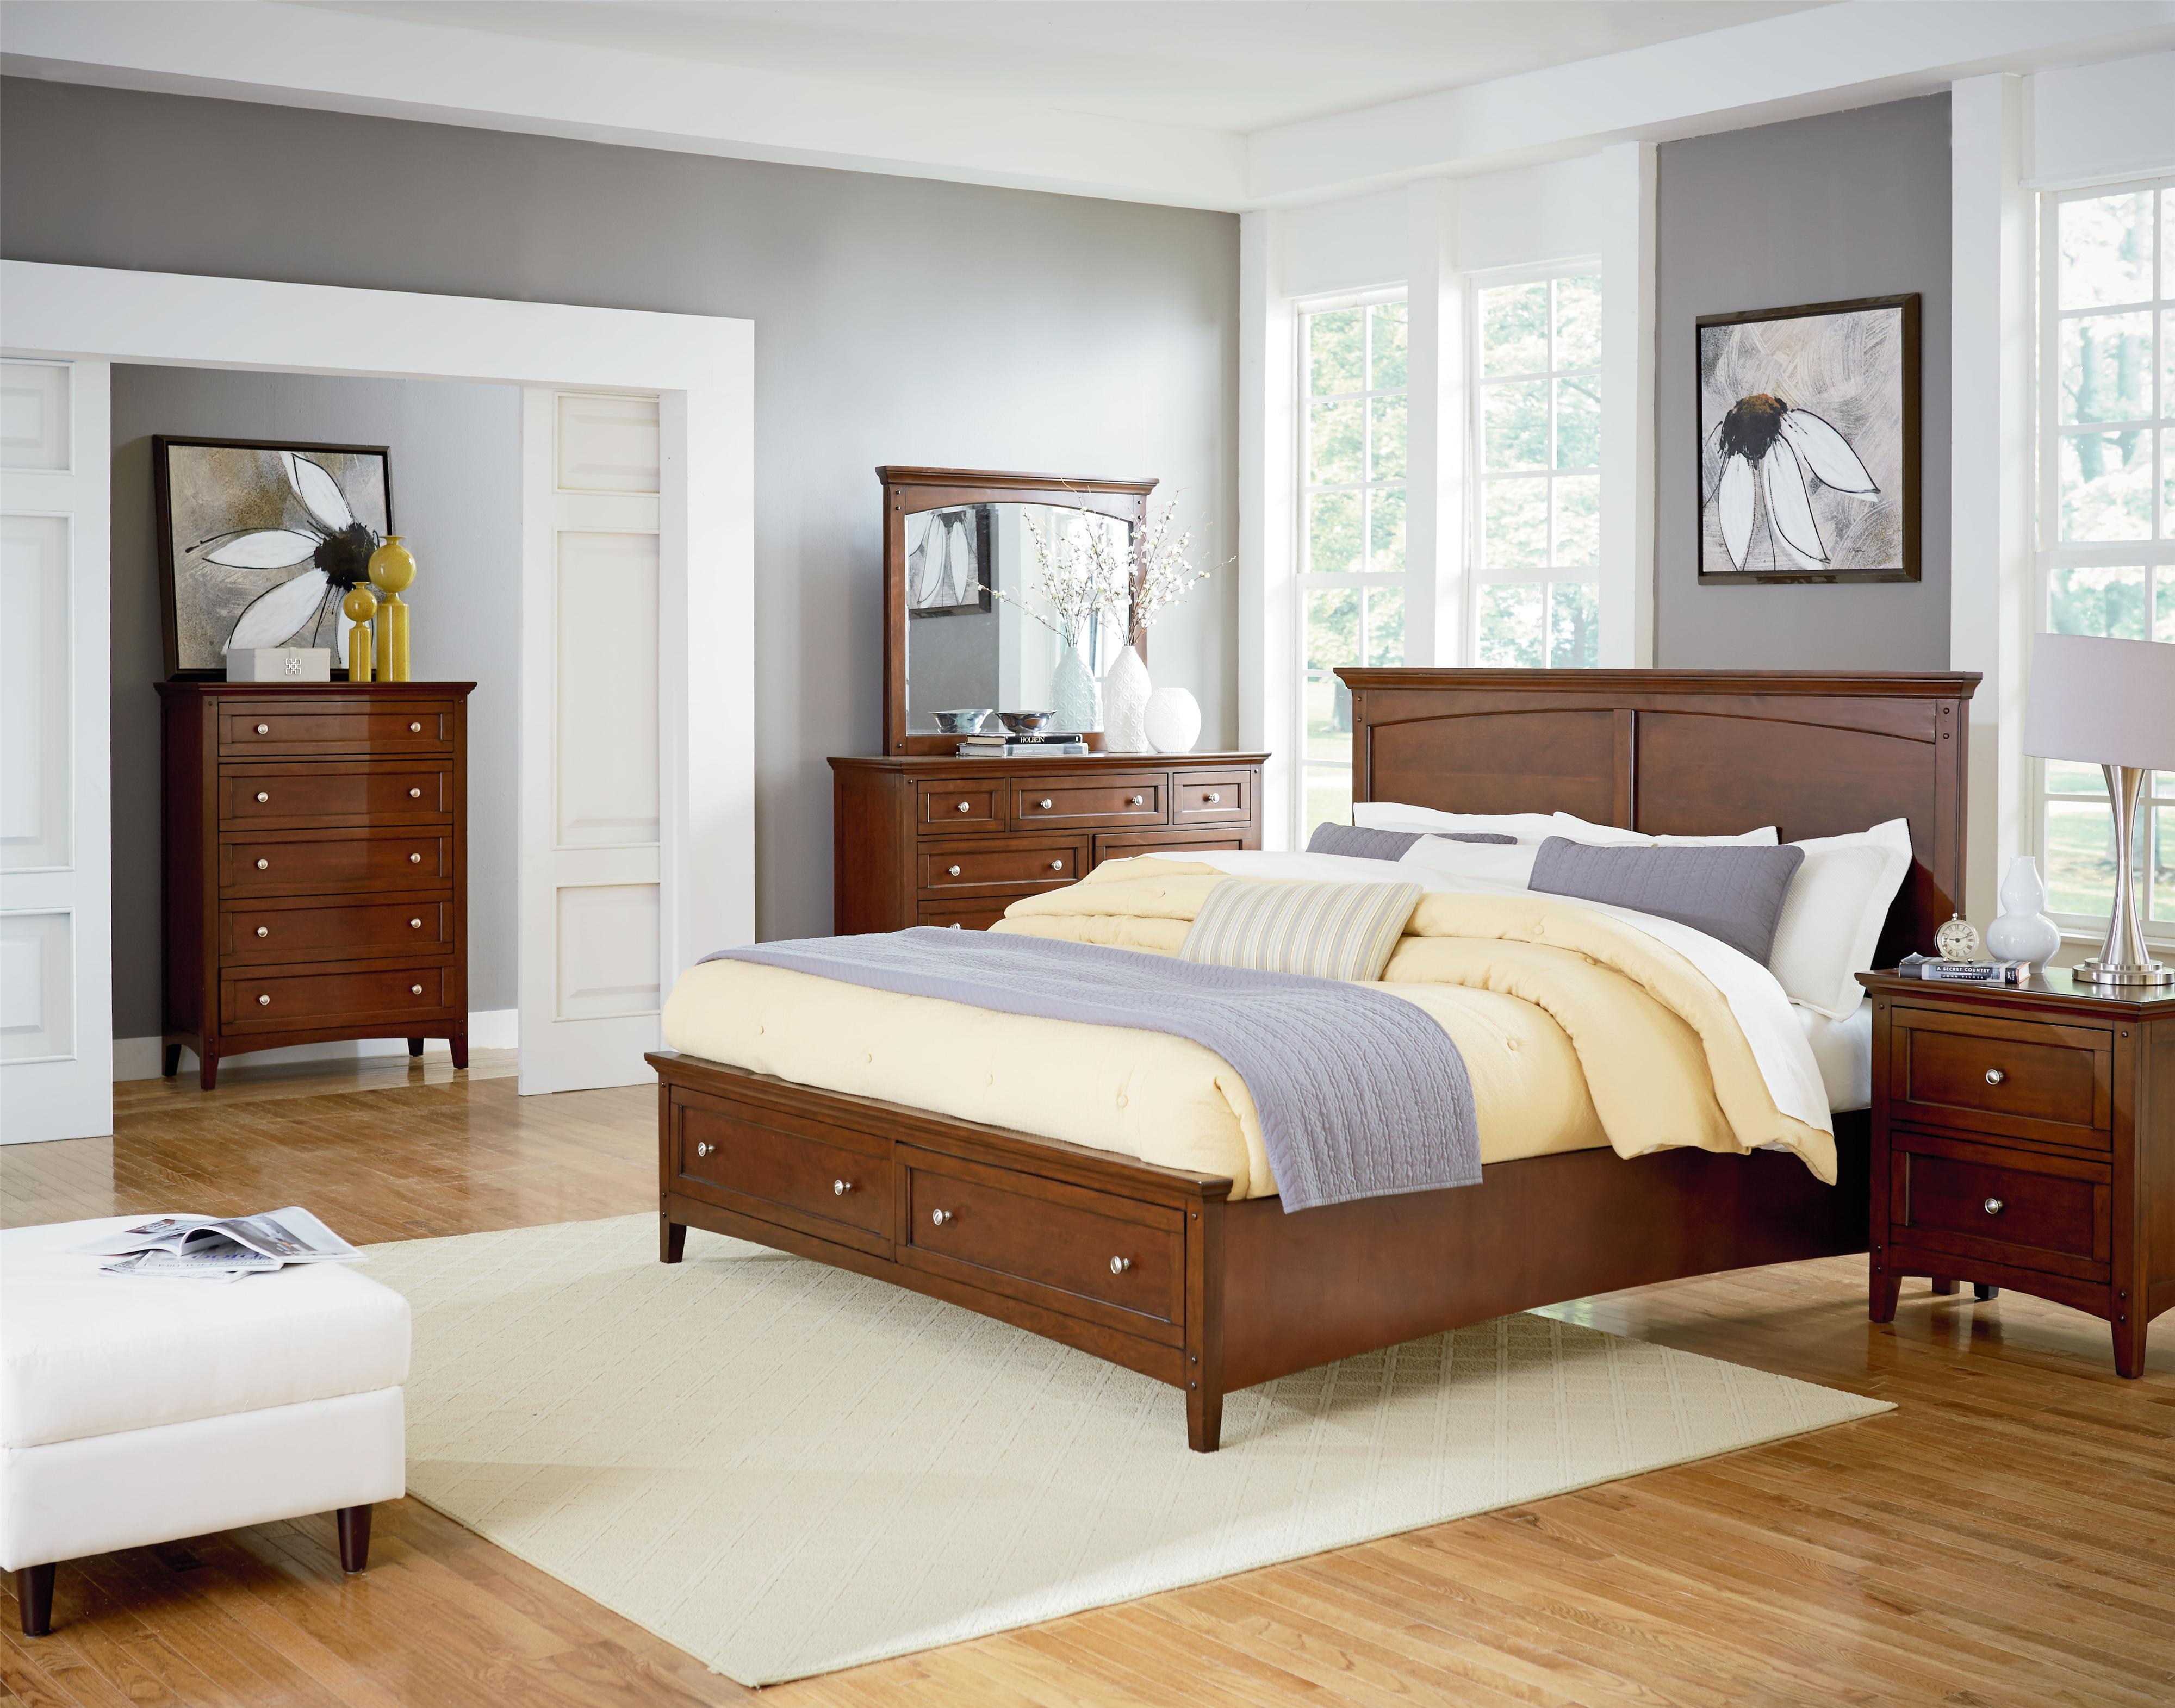 Standard Furniture Cooperstown Queen Bedroom Group - Item Number: 93800 Q Bedroom Group 1